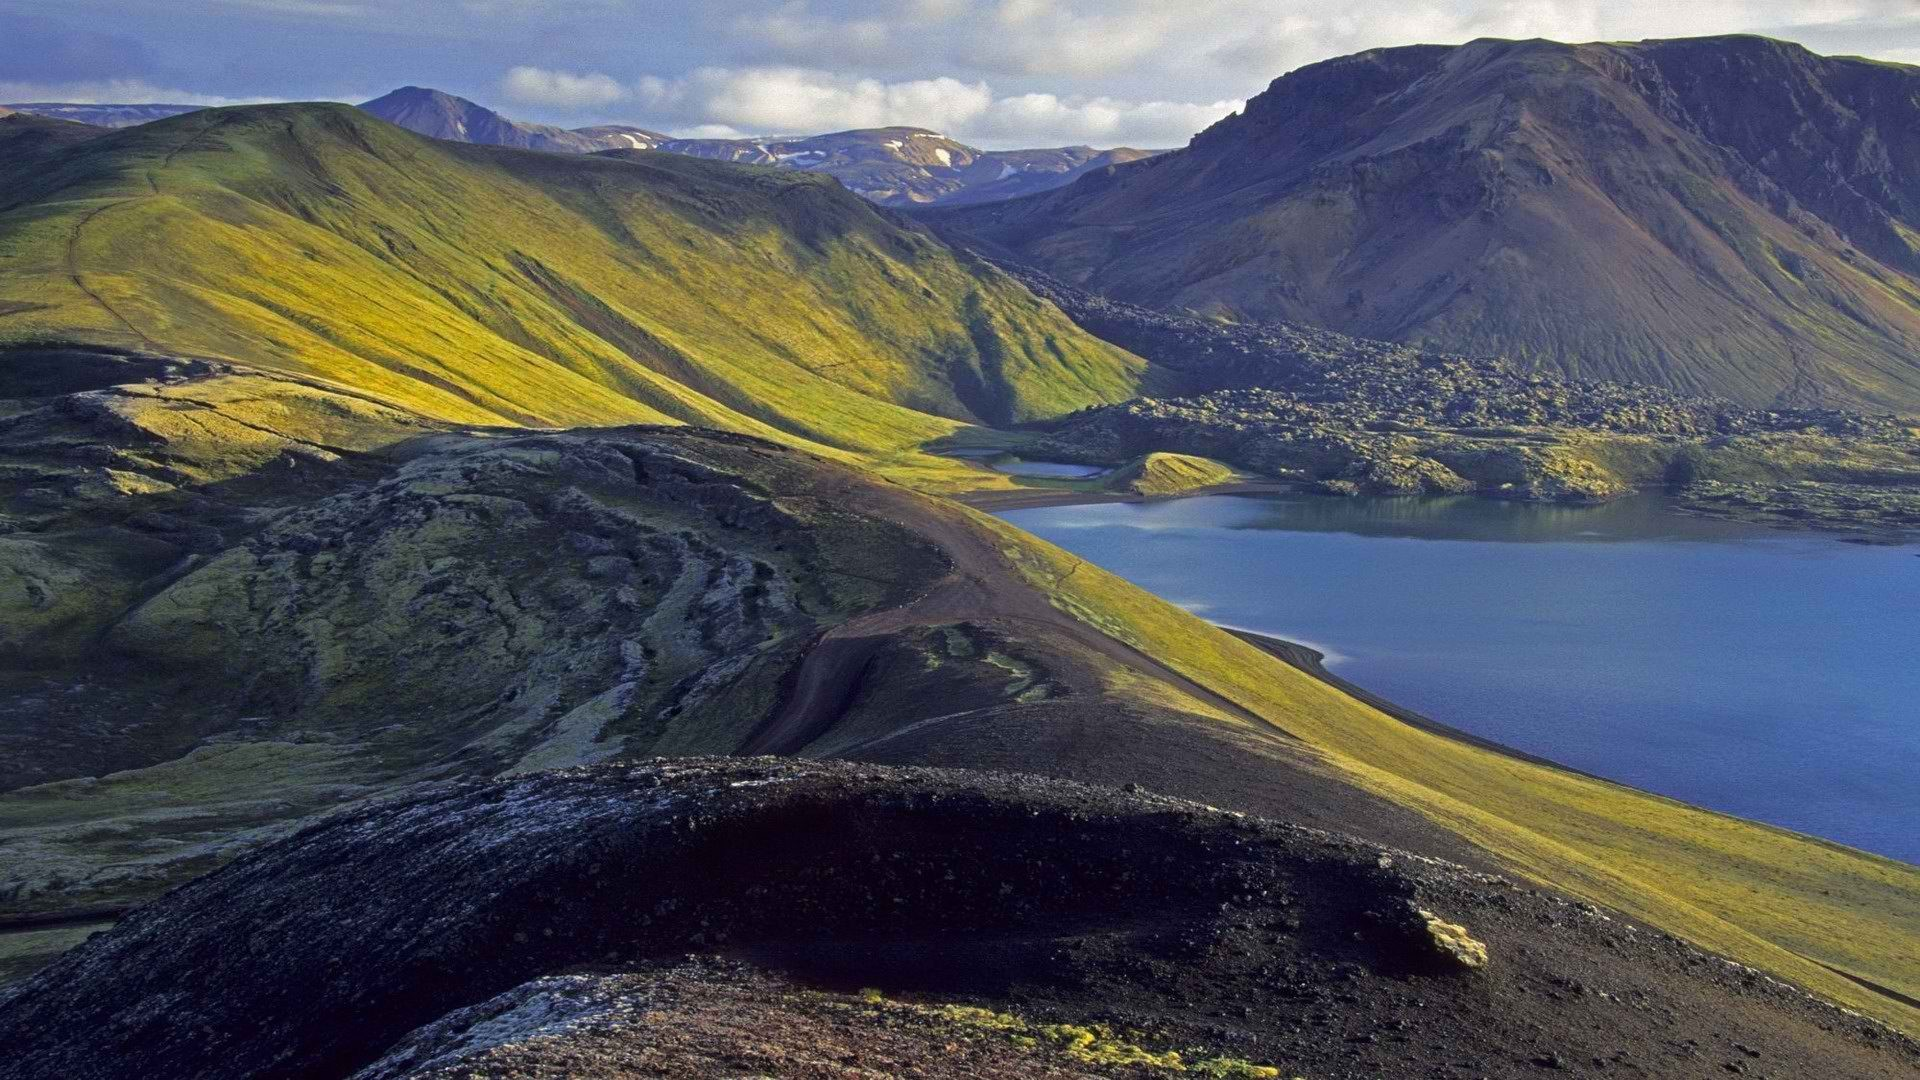 Inhospitable mountainous terrain in Iceland wallpapers and images ...